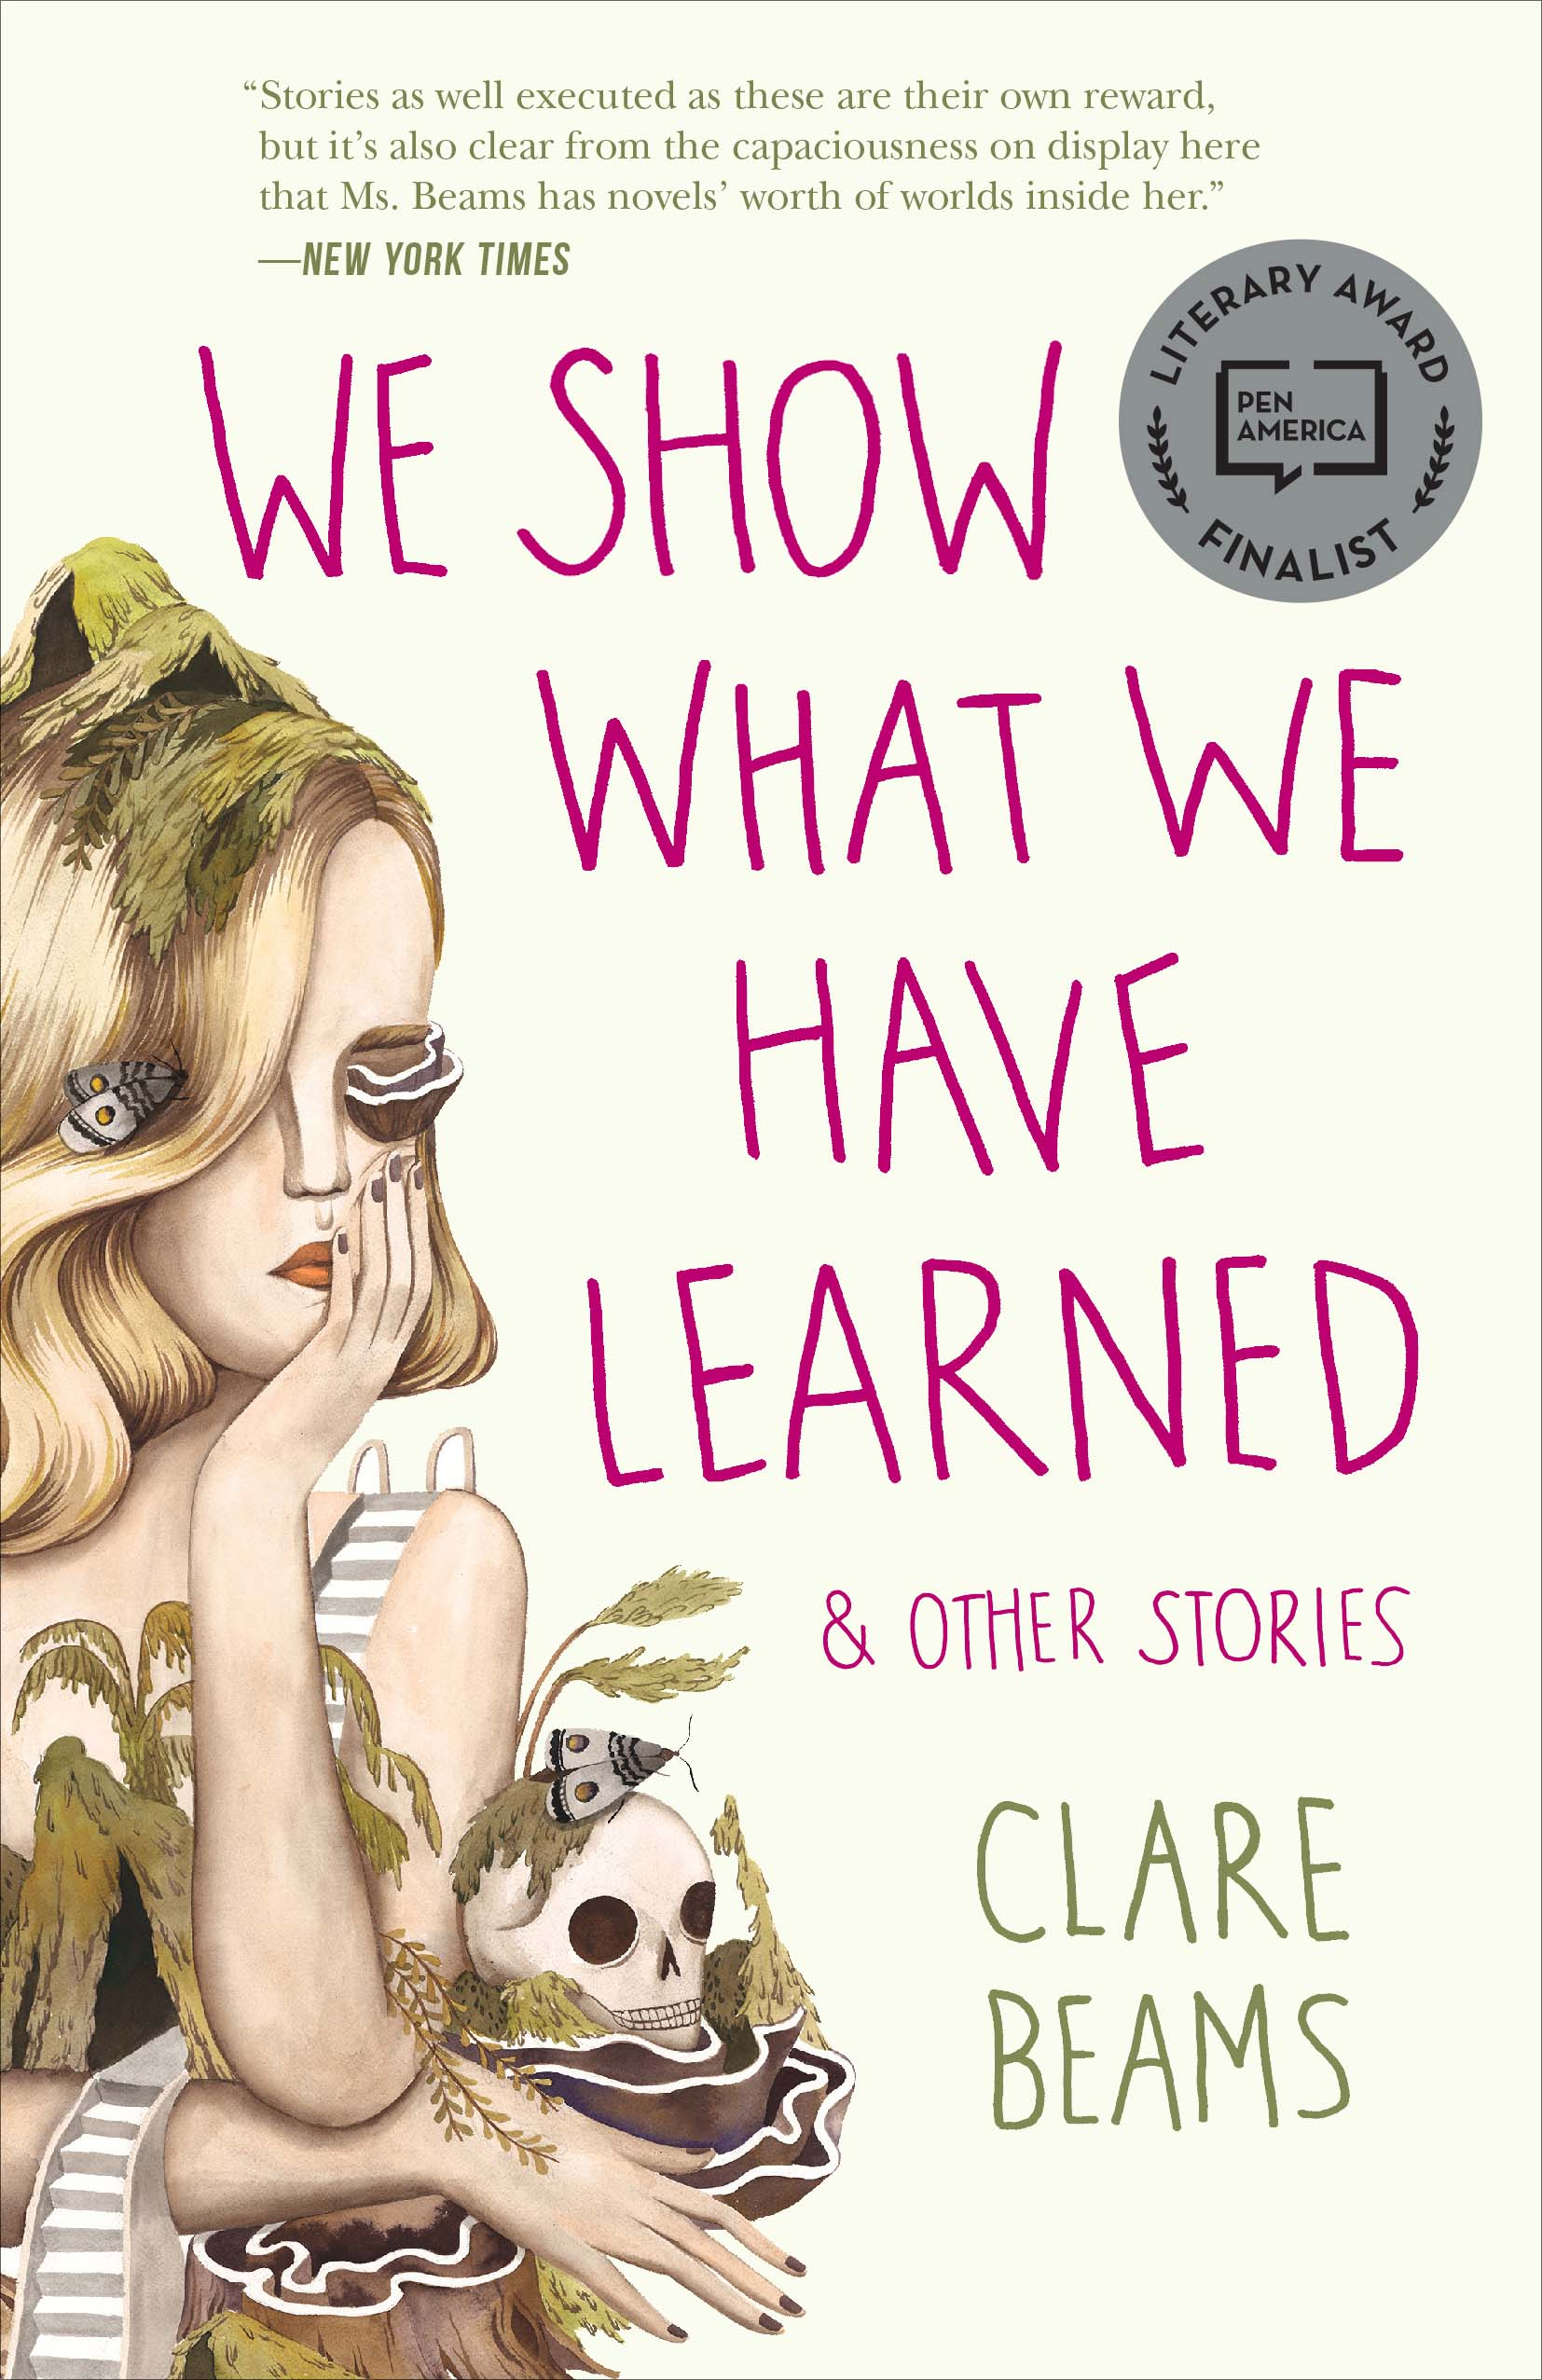 We Show What We Have Learned 2nd cover.jpg